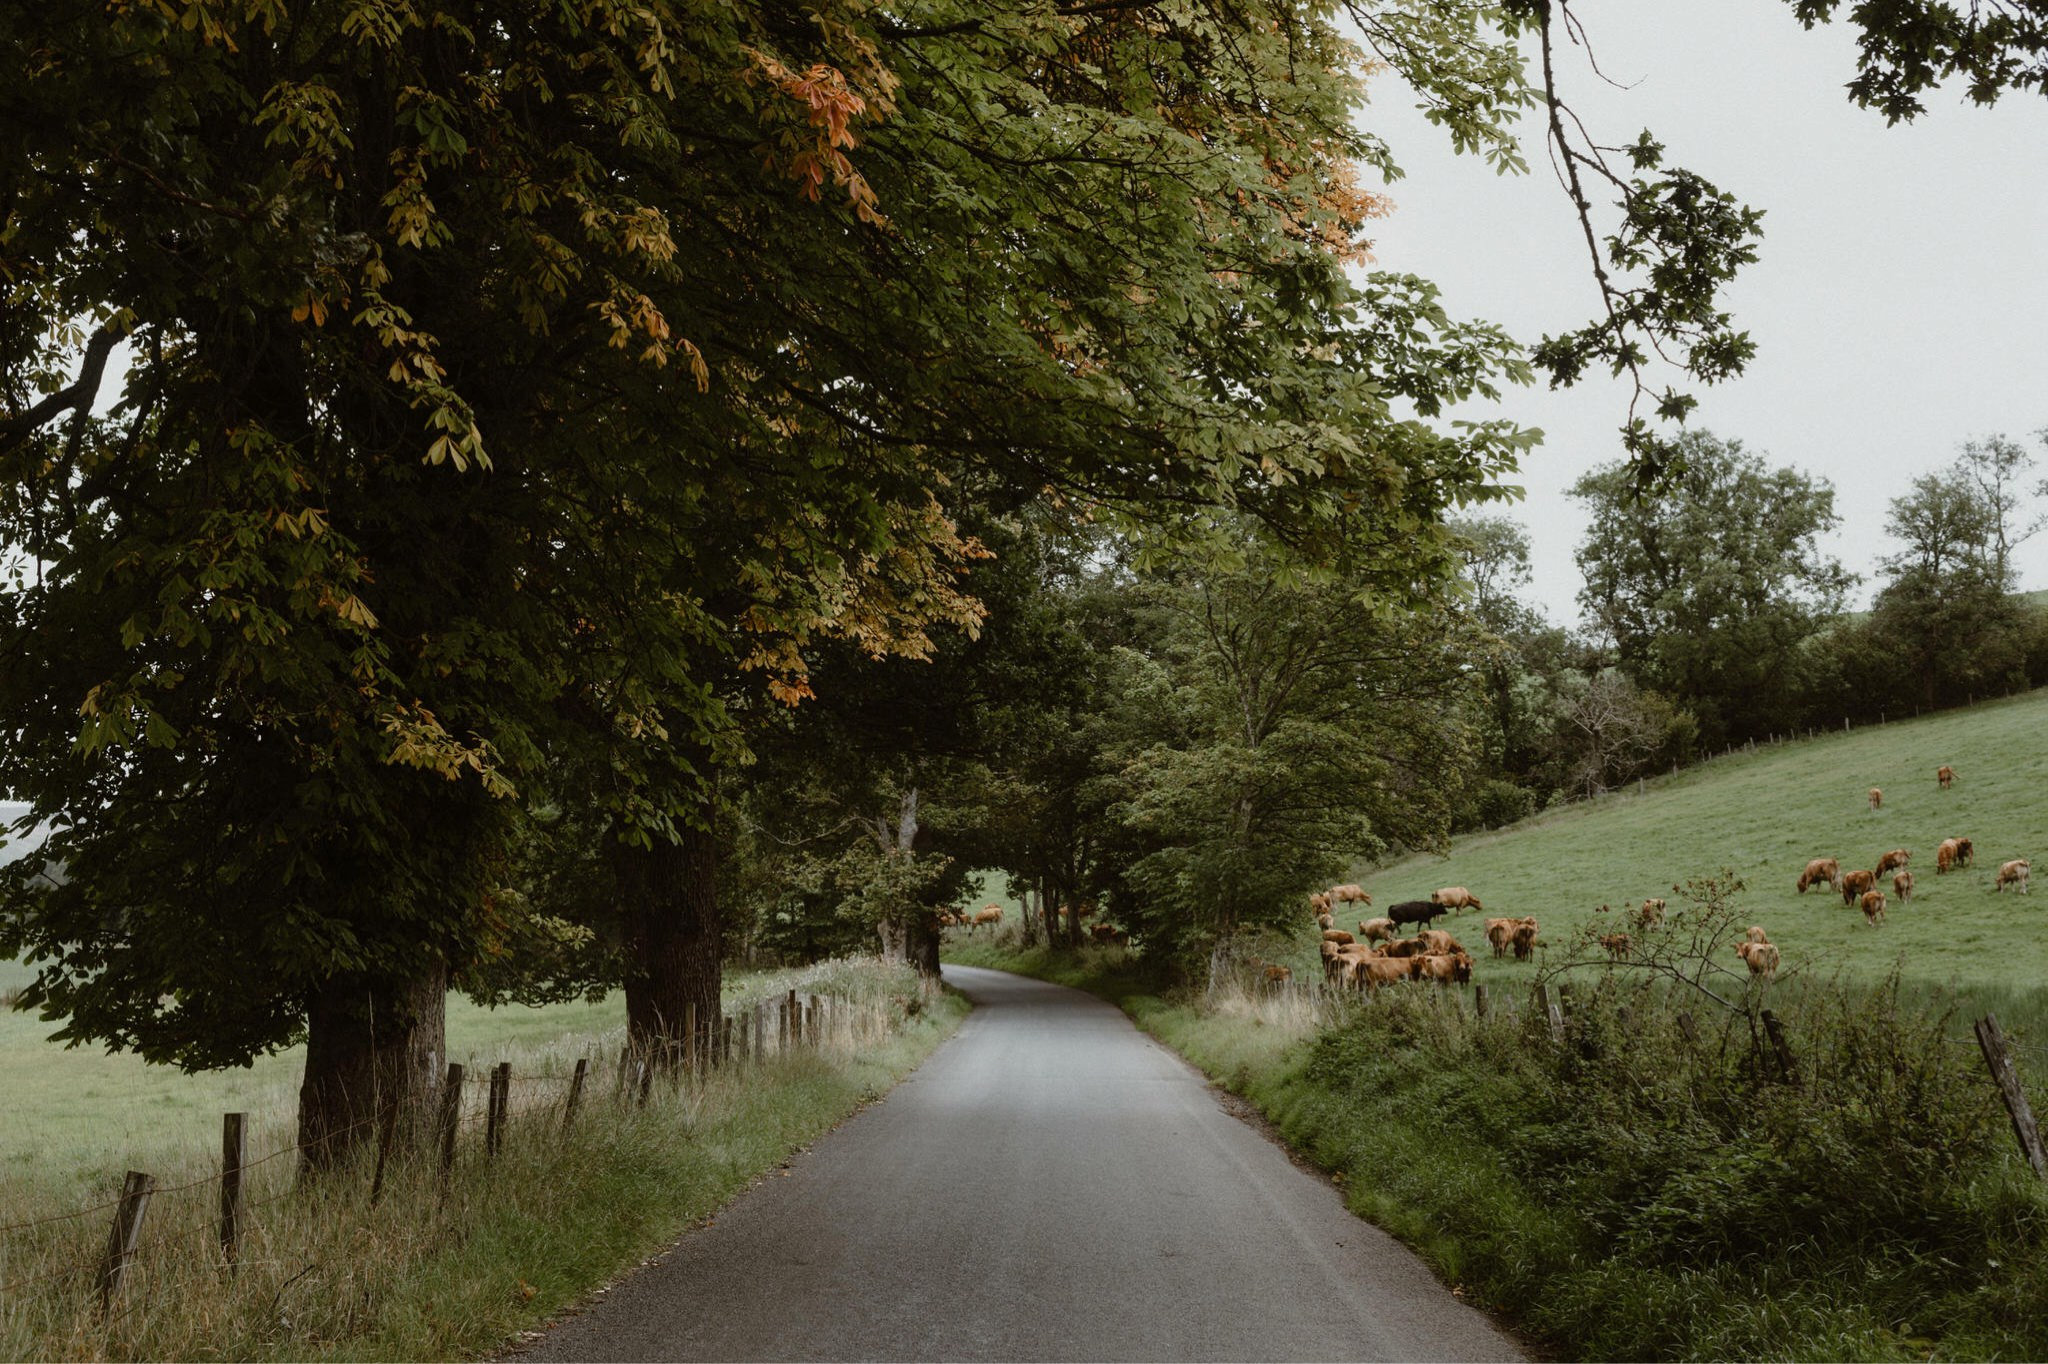 A road in the Tay valley